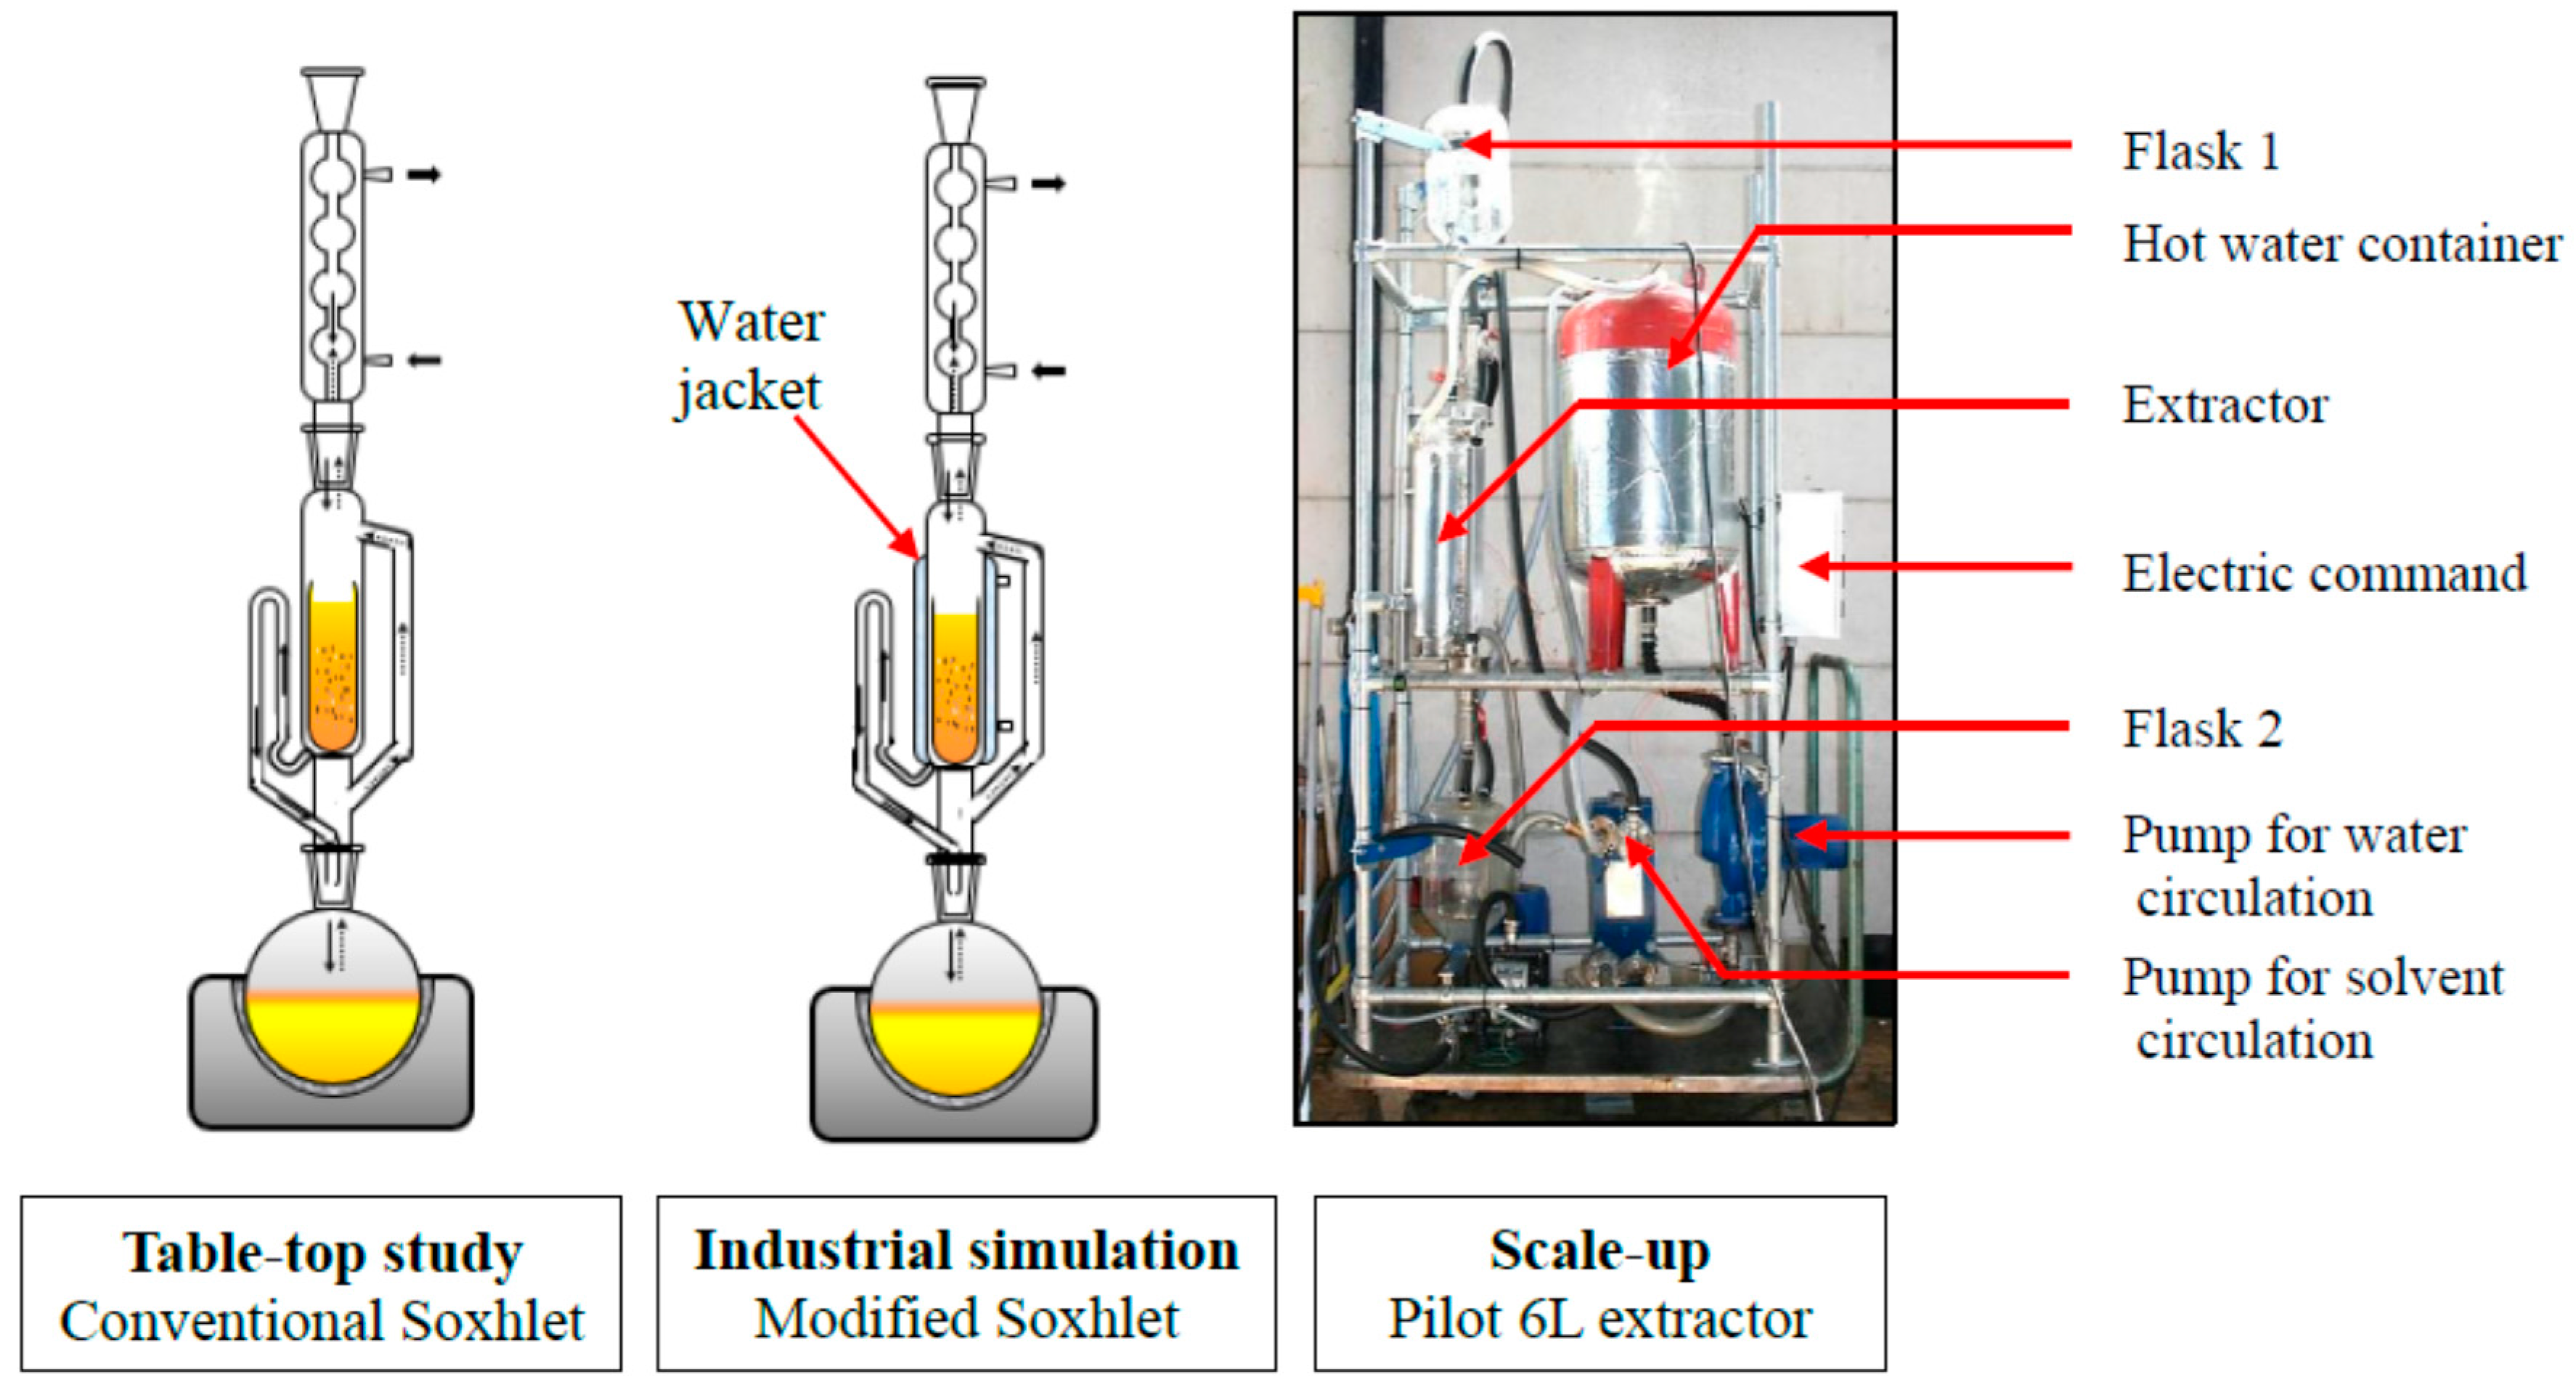 Ijms Free Full Text Alternative Bio Based Solvents For Extraction Of Fat And Oils Solubility Prediction Global Yield Extraction Kinetics Chemical Composition And Cost Of Manufacturing Html